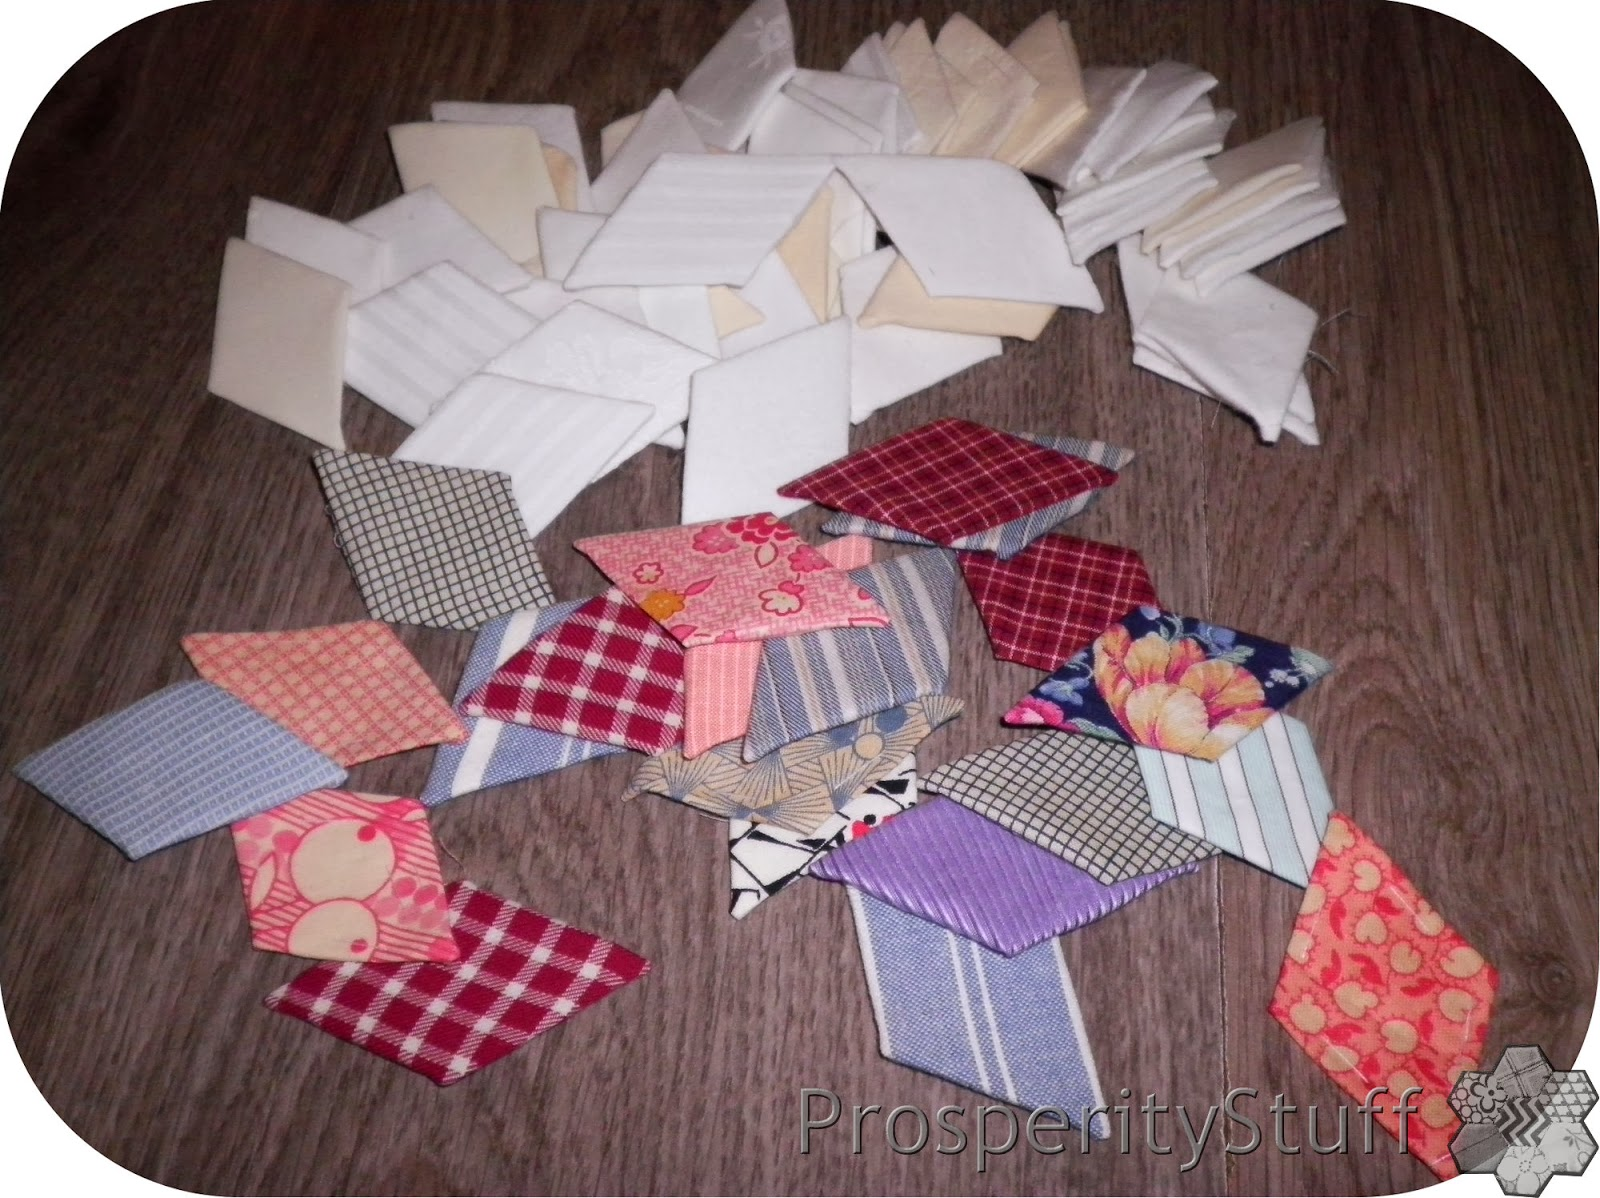 ProsperityStuff Quilts - 60-degree diamonds for EPP Stars